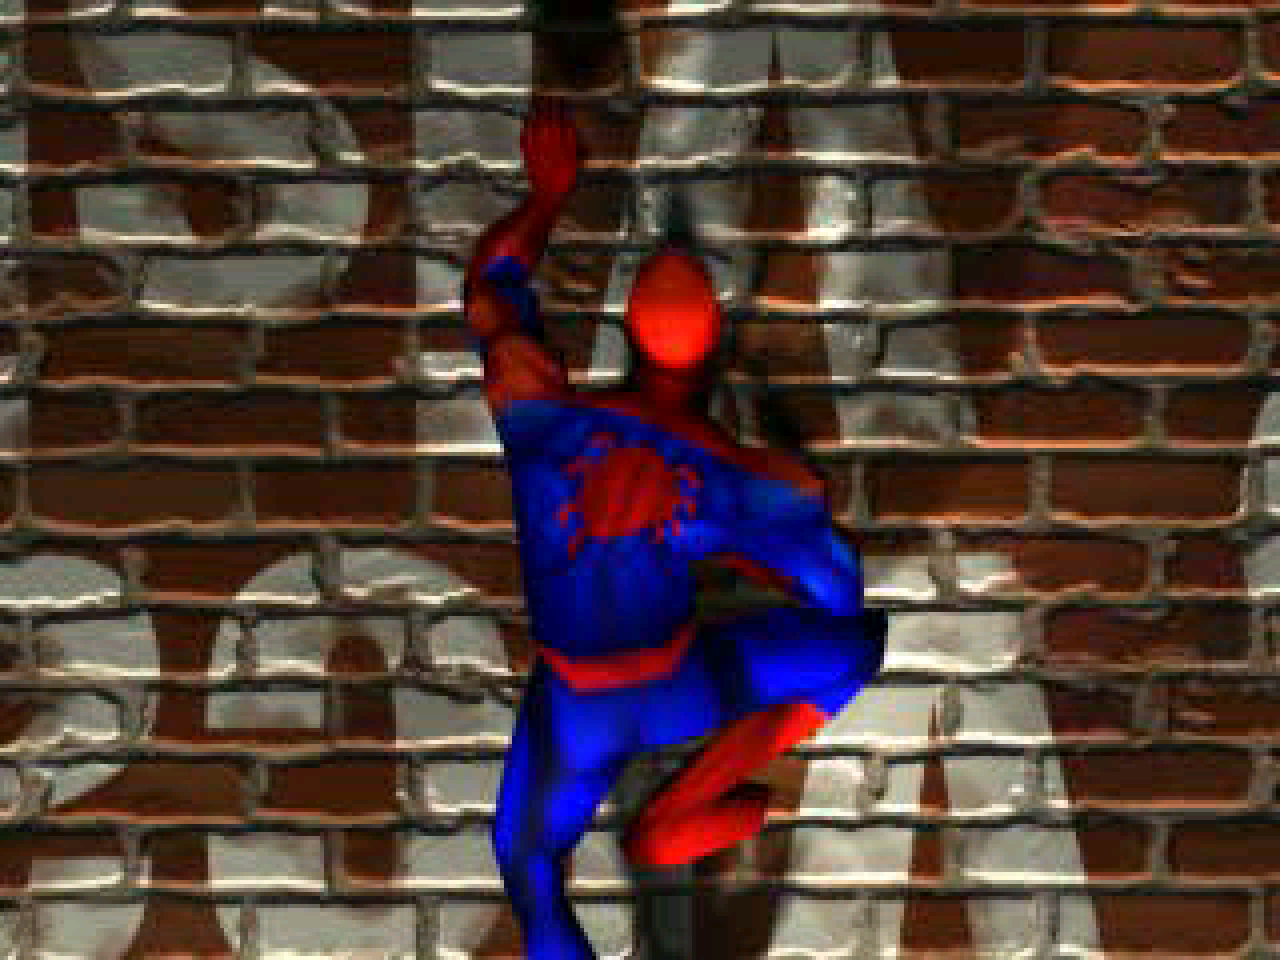 https://s3.eu-west-3.amazonaws.com/games.anthony-dessalles.com/Spider-Man 2 Enter Electro PS1 2020 - Screenshots/Spider-Man 2 Enter Electro-201125-184825.png